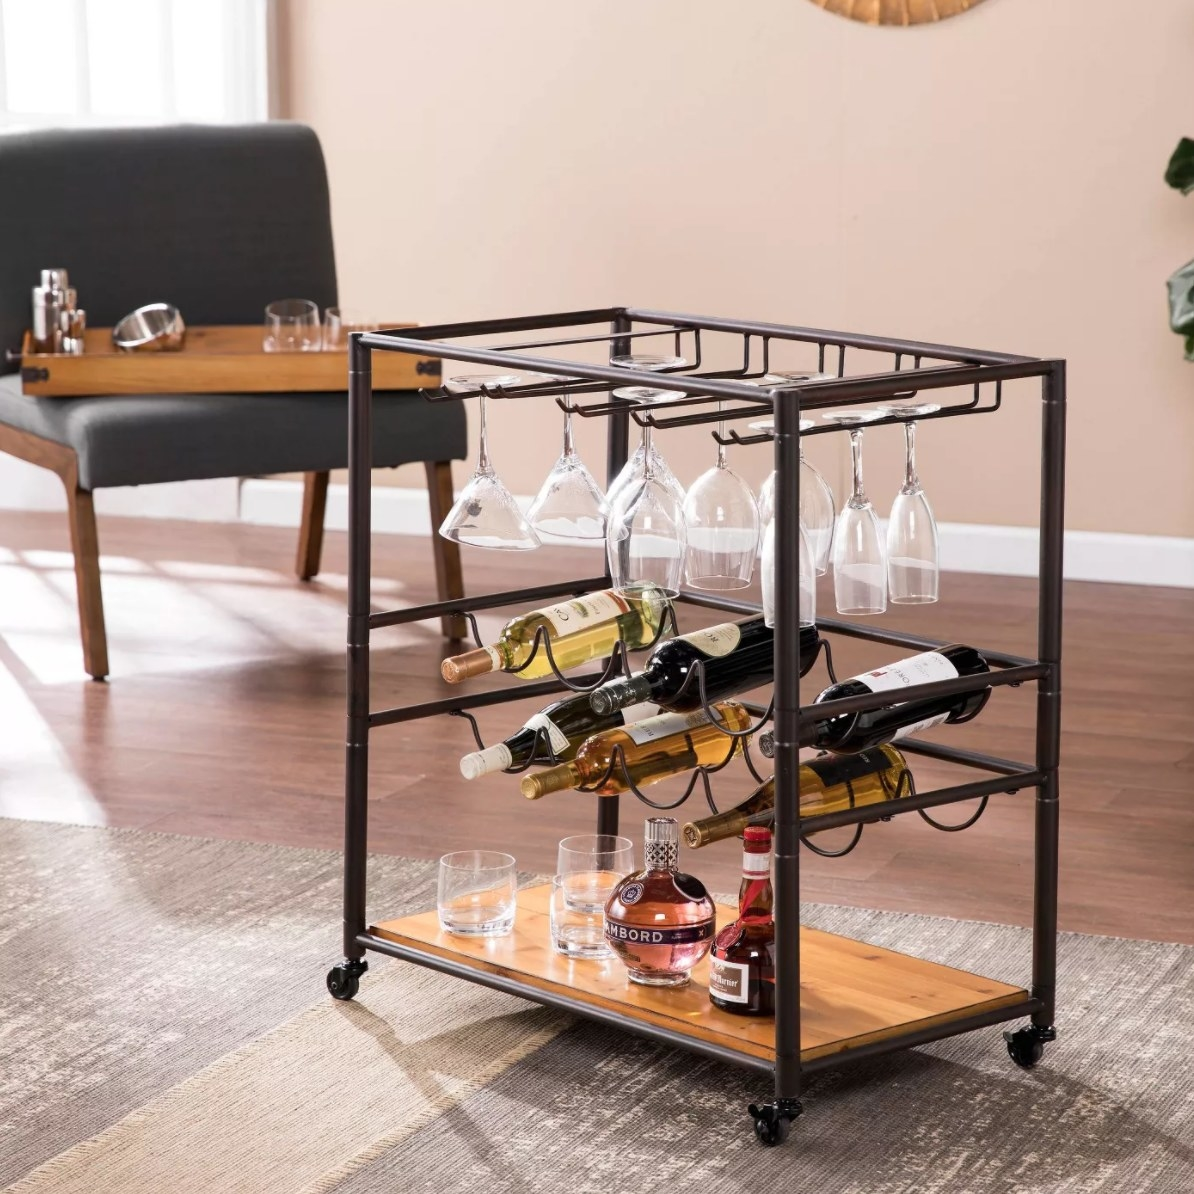 The bar cart in black/ natural holding wine, wine glasses, and liquour